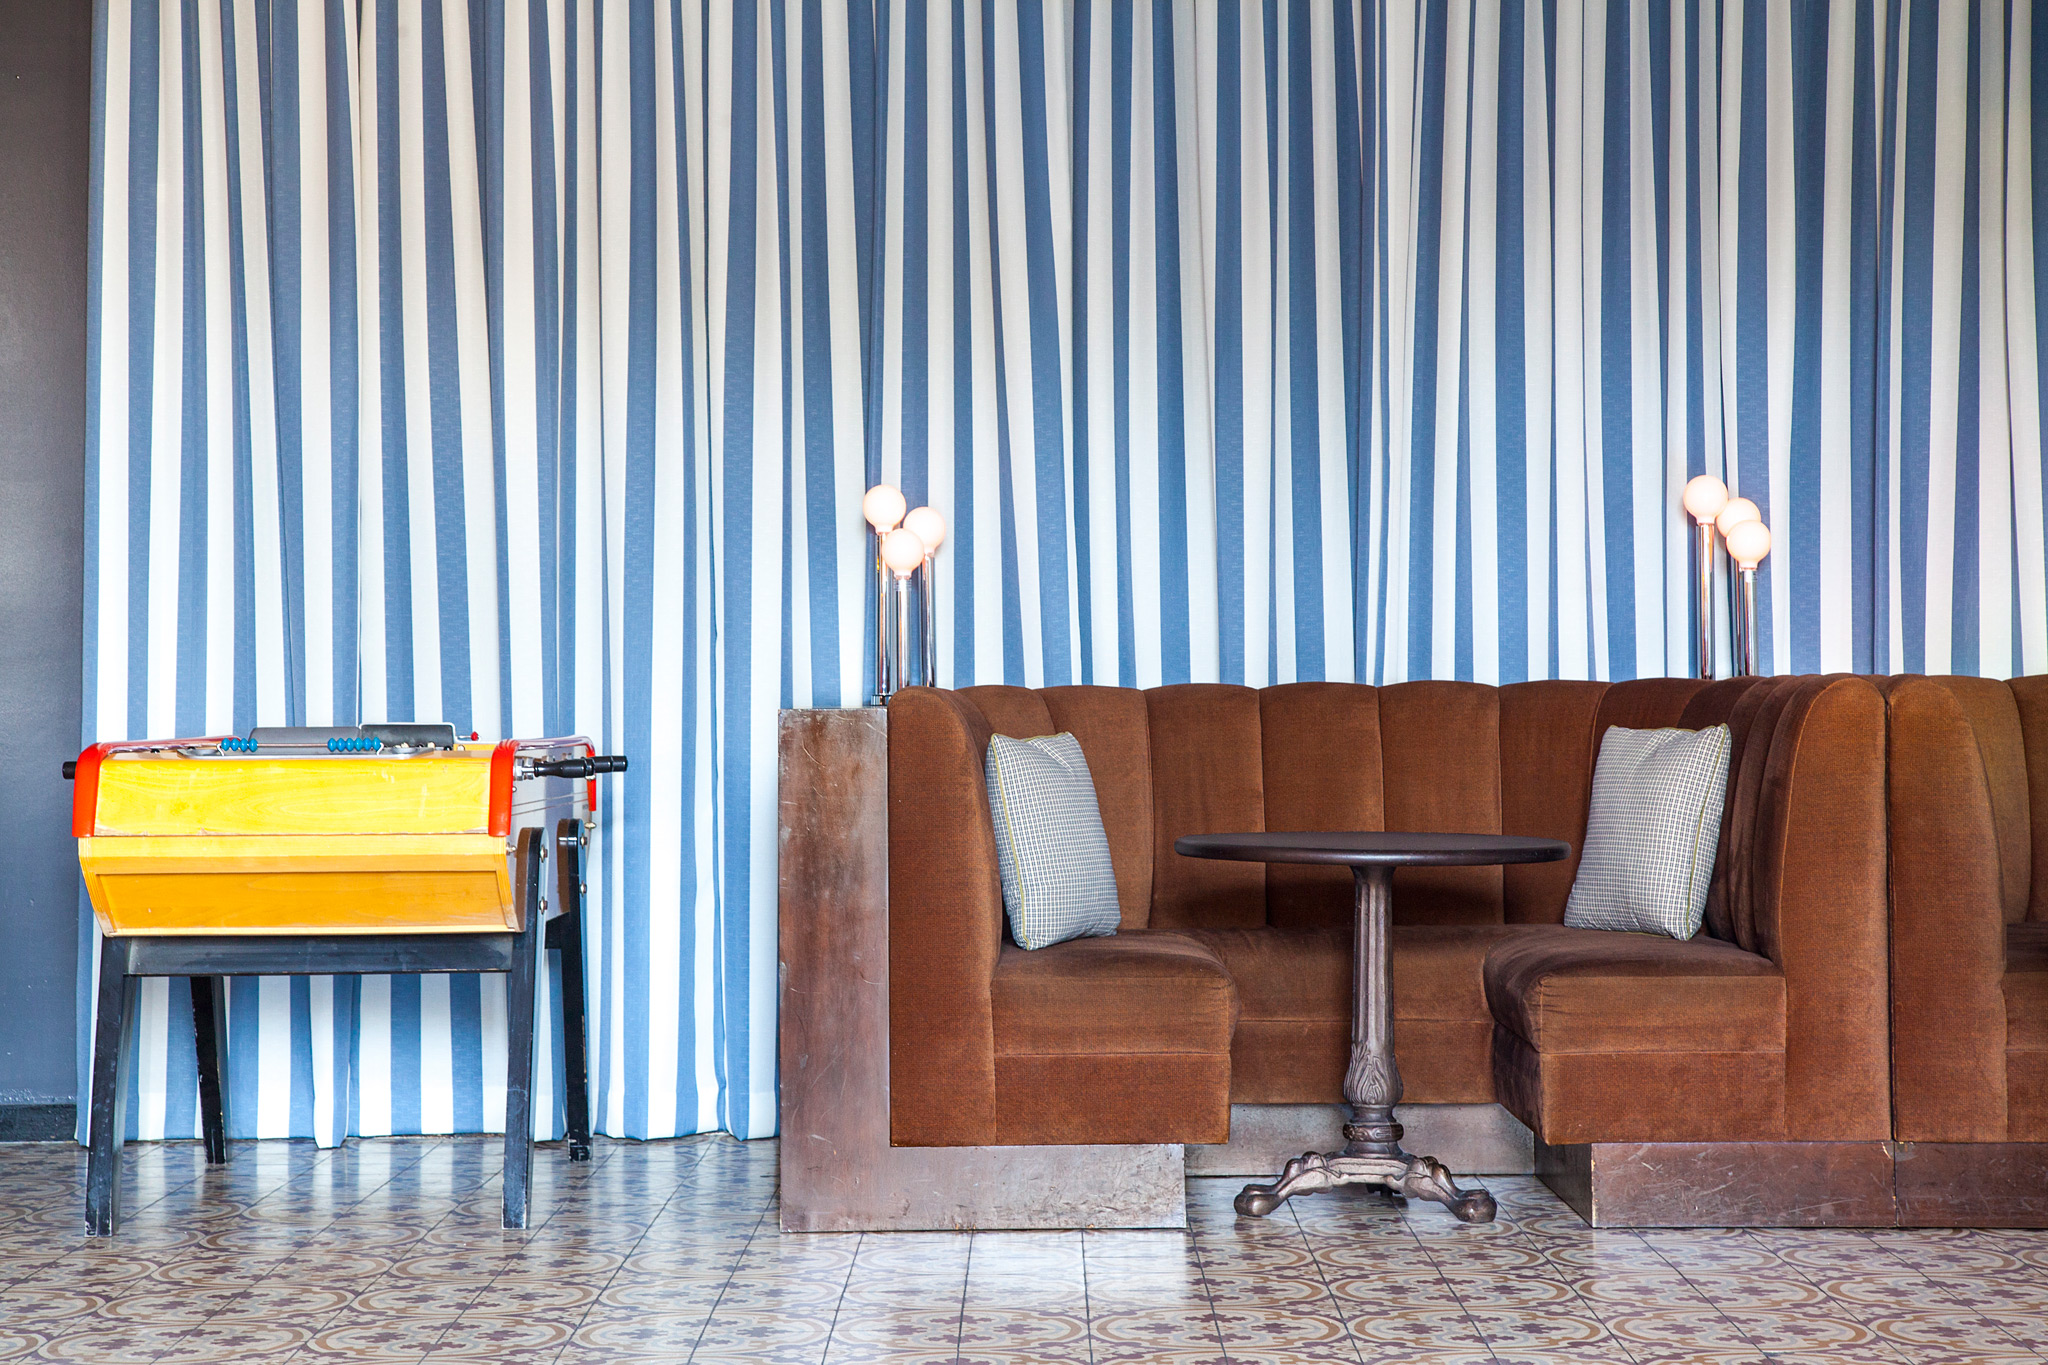 Yellow foosball table and brown plush booth seating against blue and white striped floor to ceiling drapery. Decorative tile flooring.